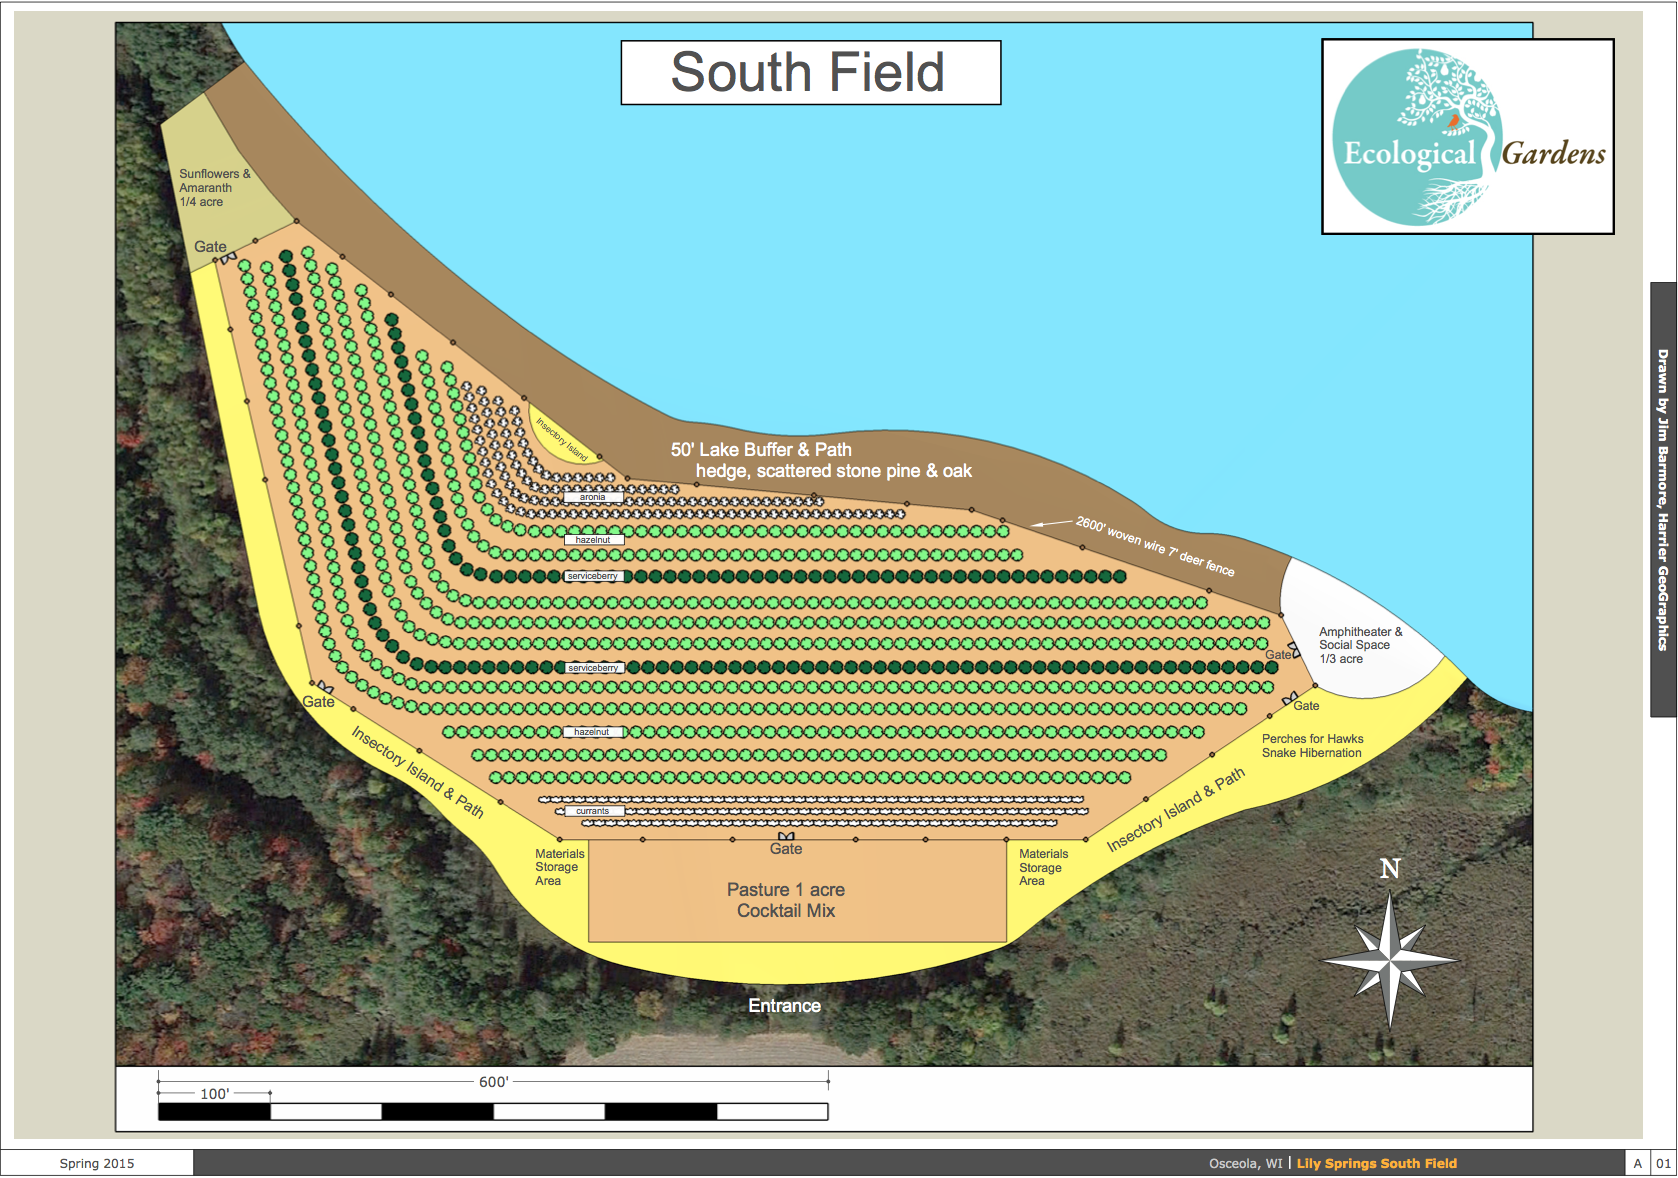 These plans, designed by Paula Westmorelandof Ecological Gardens and drawn by Jim Barmore of Harrier GeoGraphics, show a preliminary layout of our hazelnutoperations.